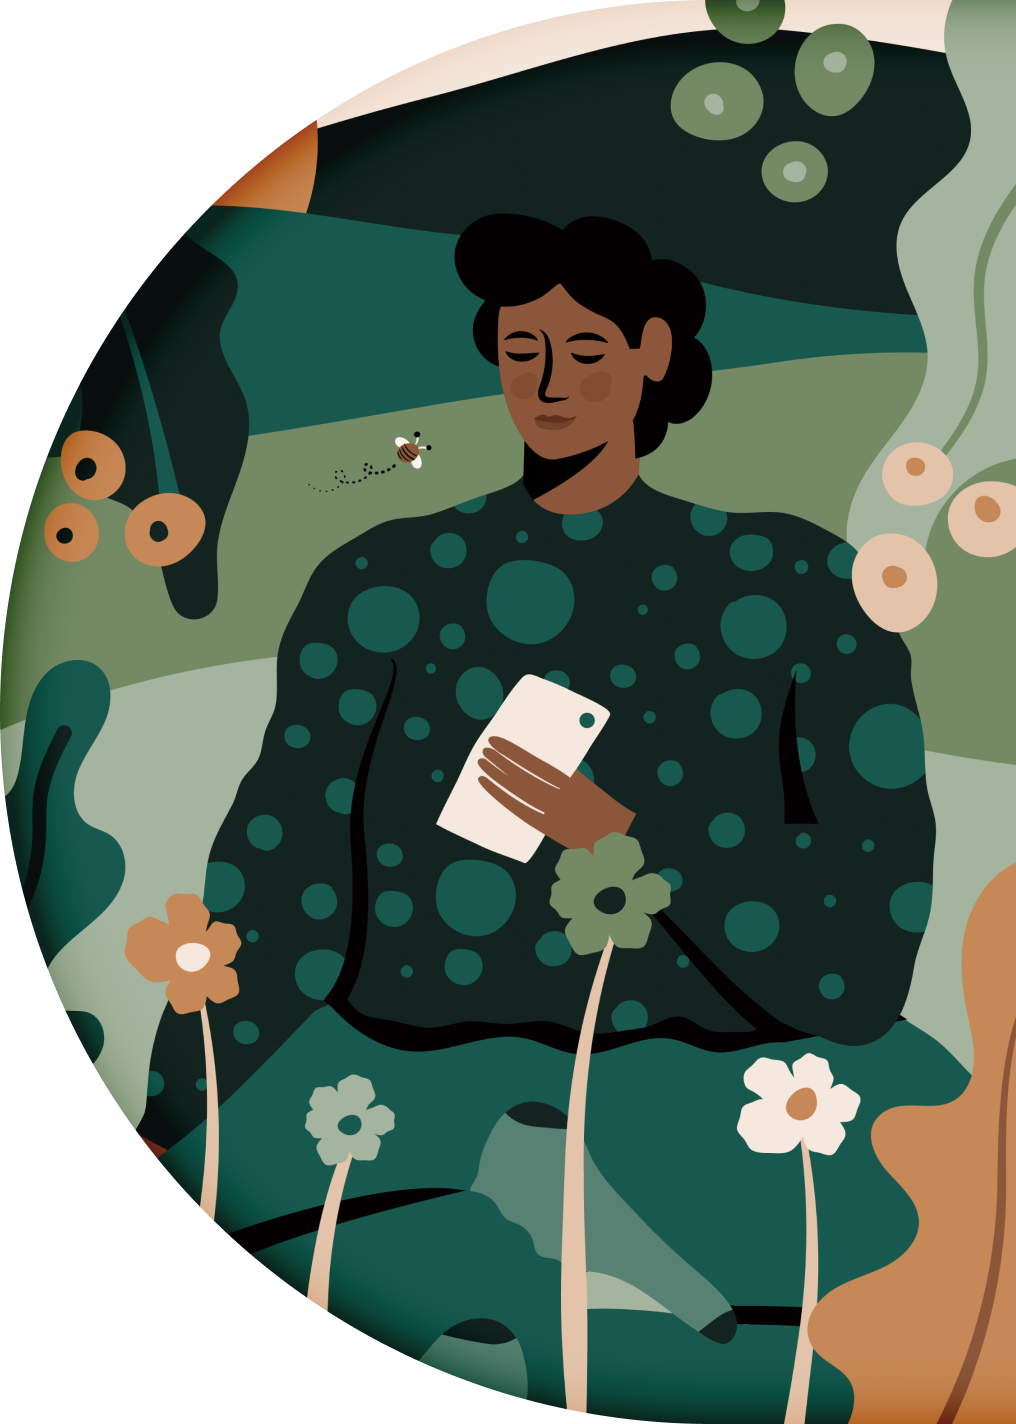 Illustration of a character sitting peacefully in nature